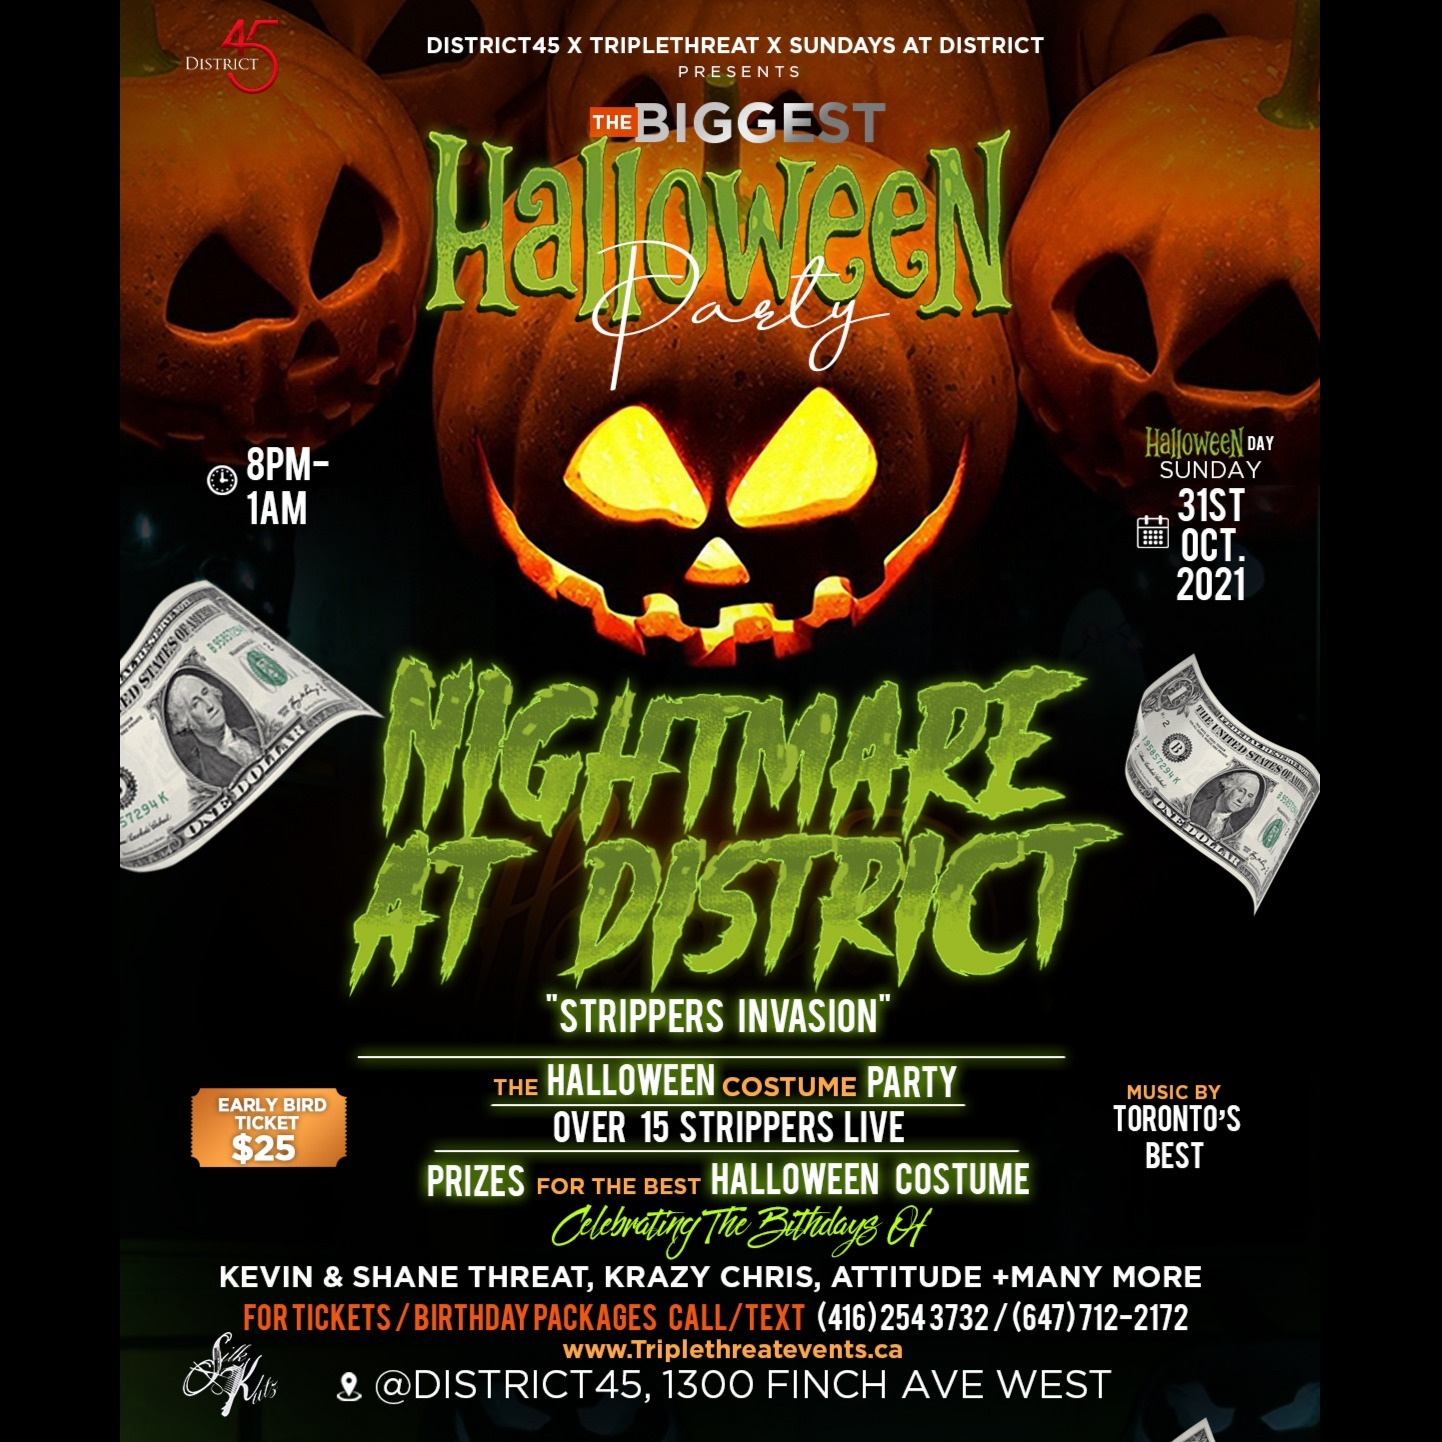 NIGHTMARE AT DISTRICT